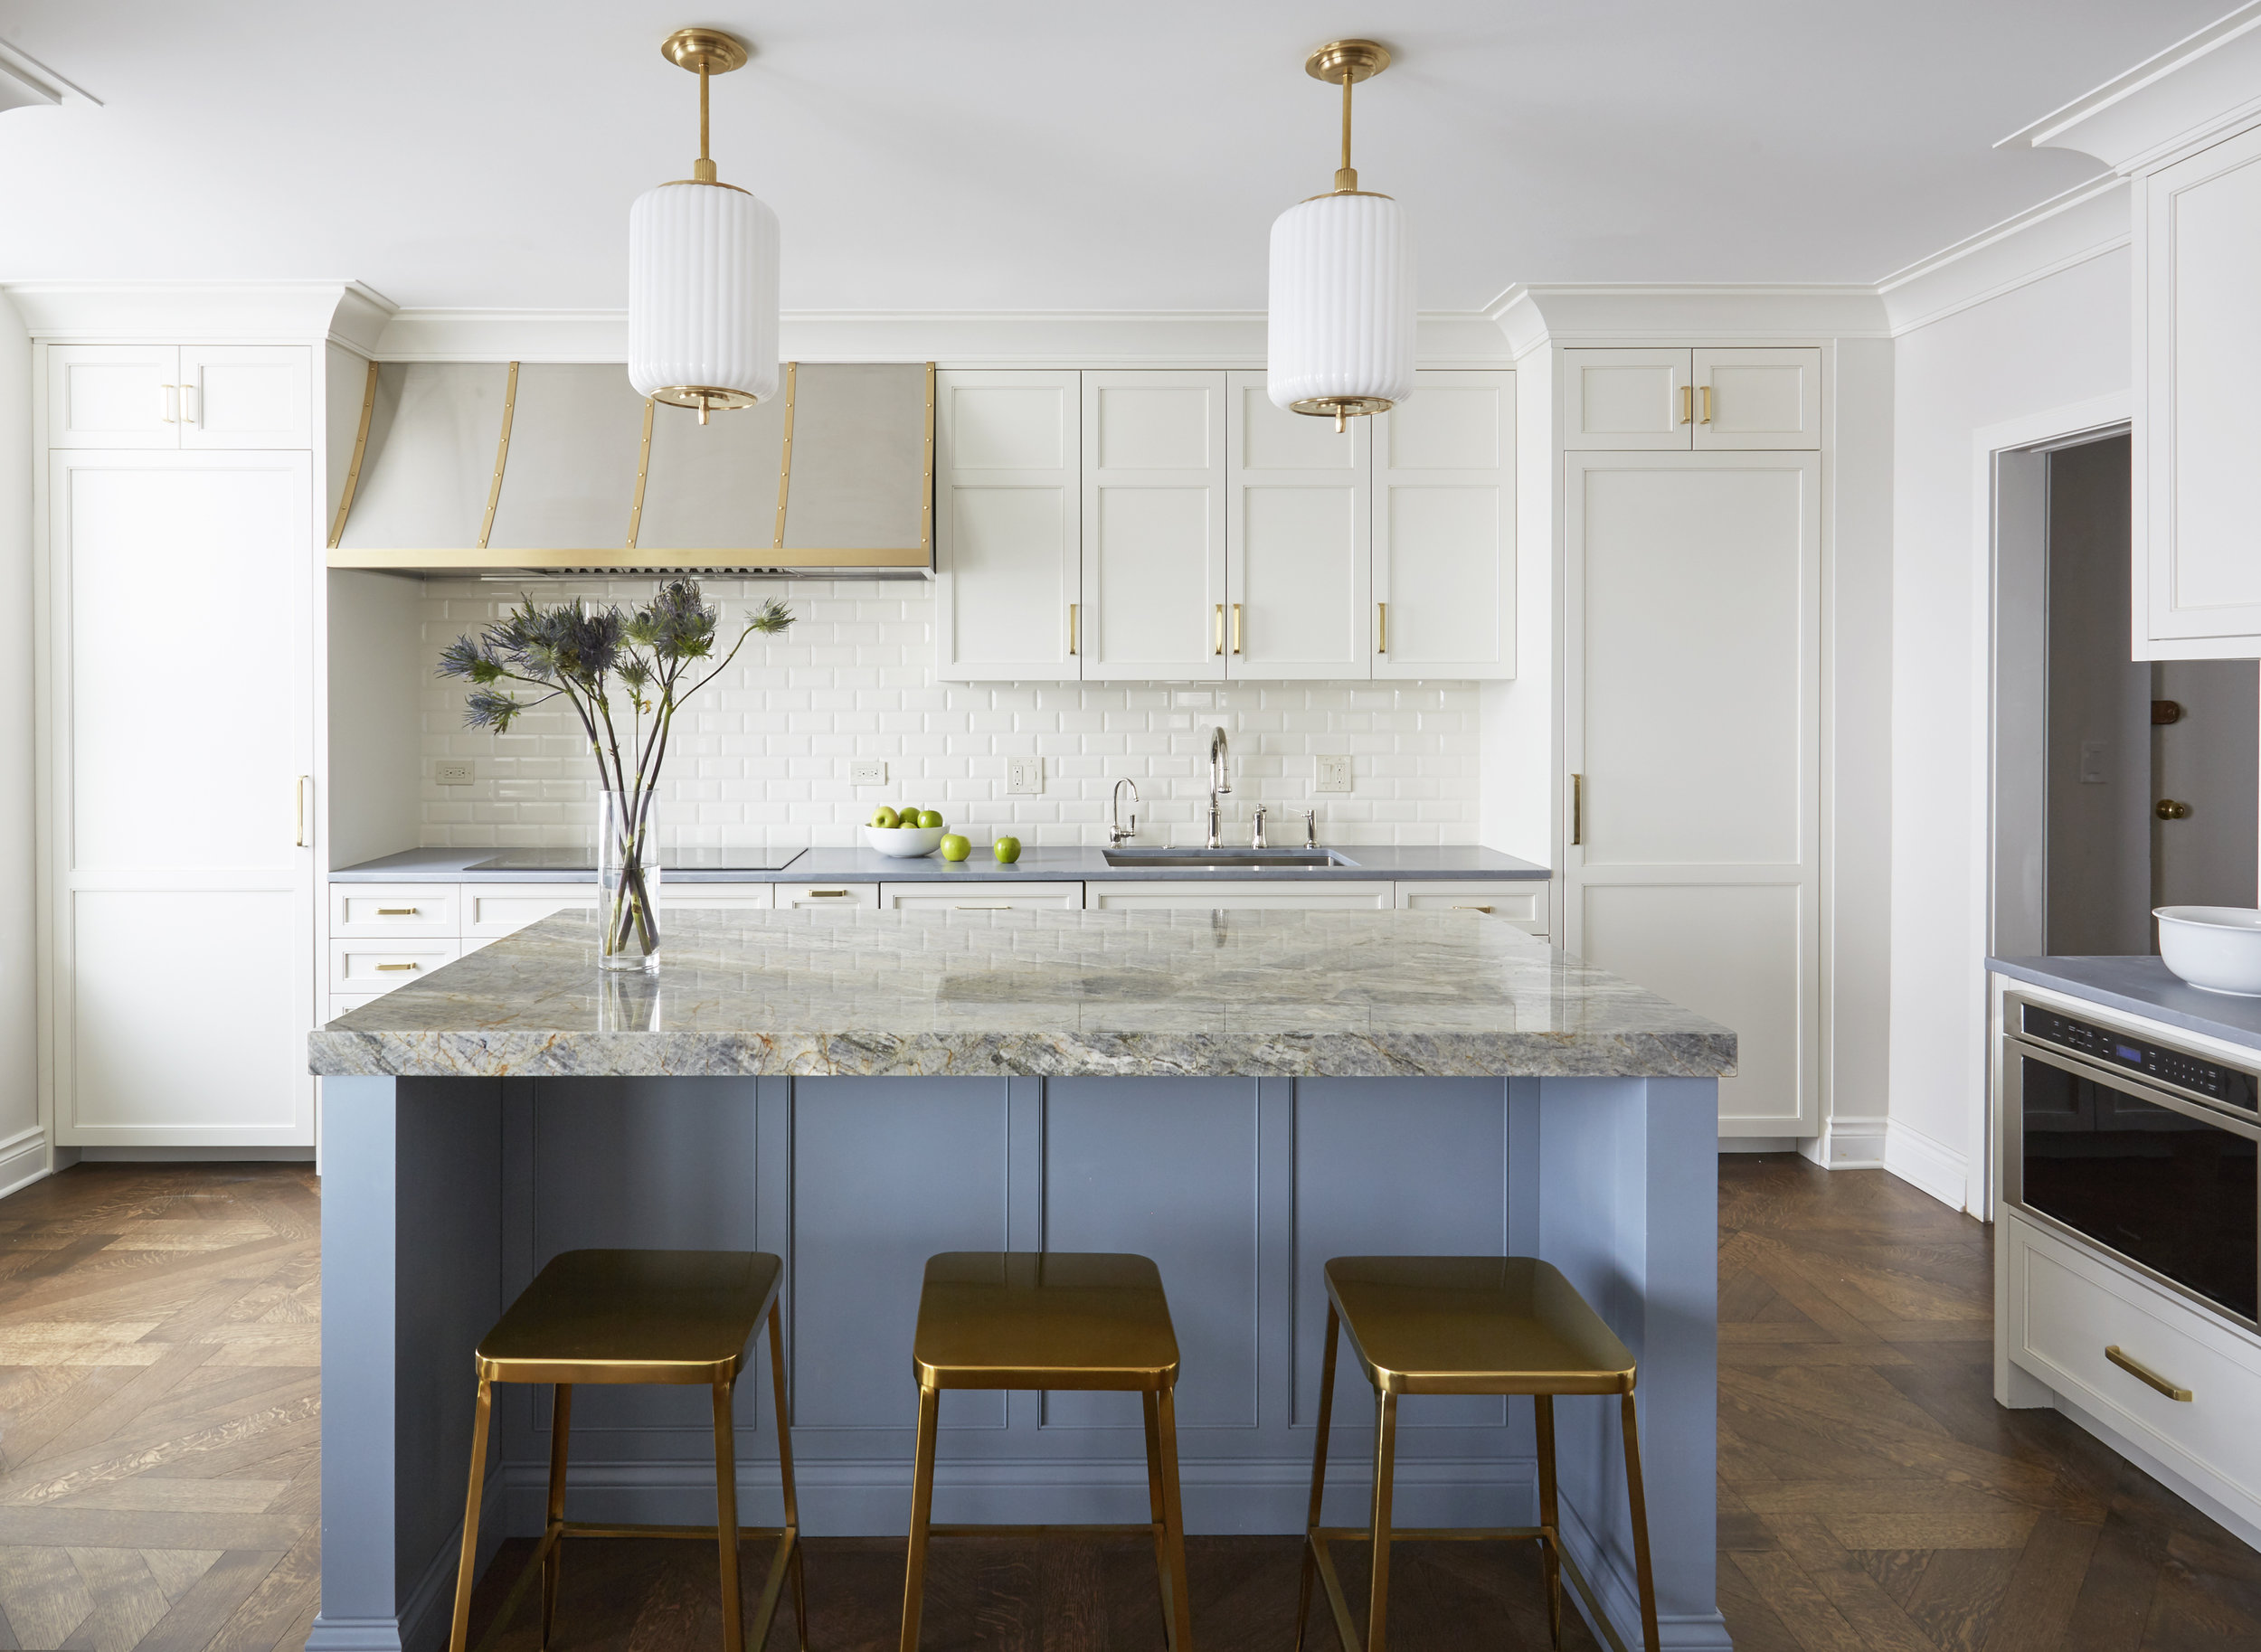 wide shot of blue and white modern, airy kitchen